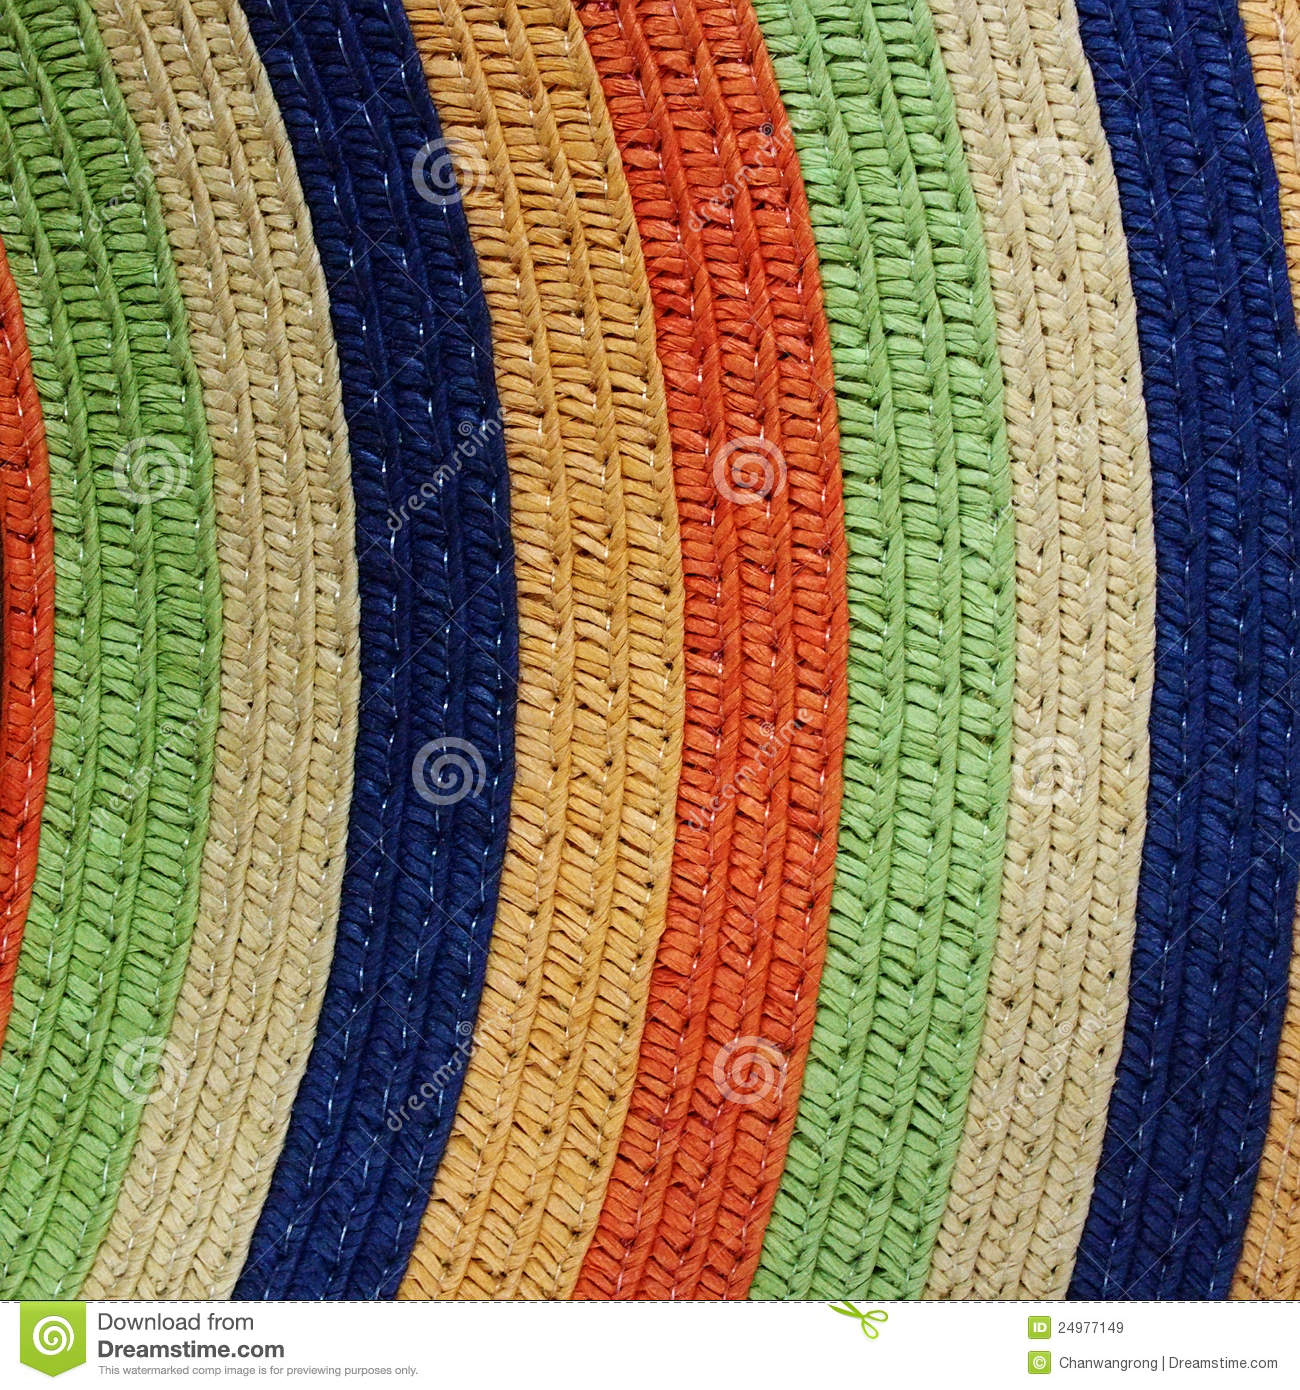 Colorful Knitting Pattern Royalty Free Stock Images - Image: 24977149